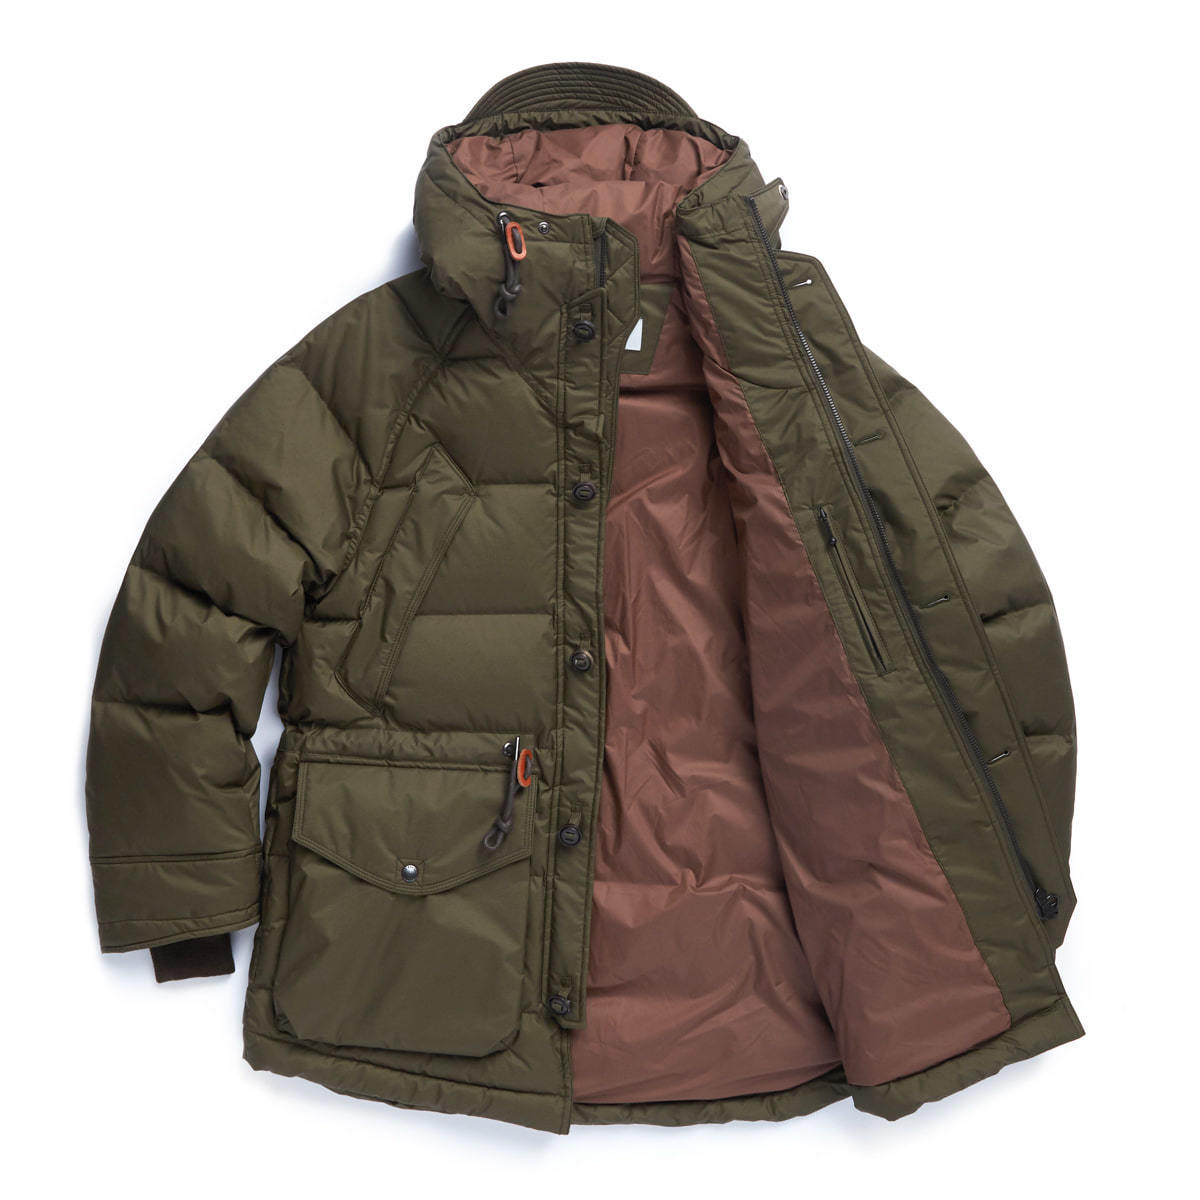 UTILITY SHIELD PARKA (Olive Shield)